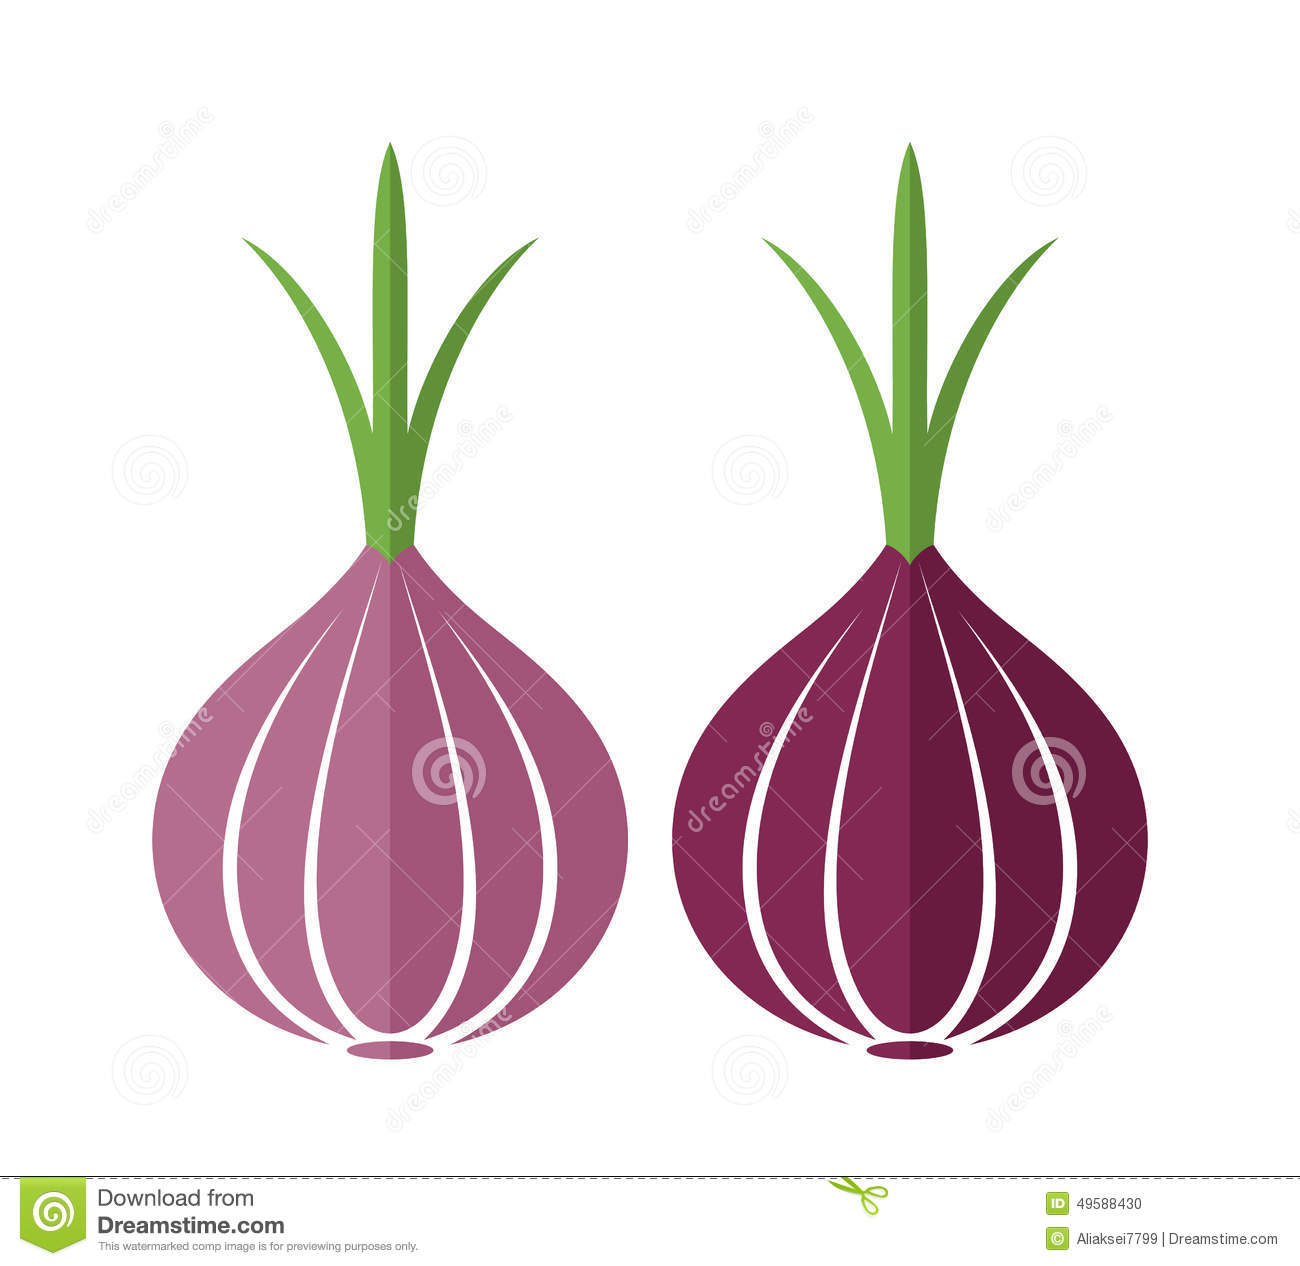 Onion Stock Vector - Image: 49588430